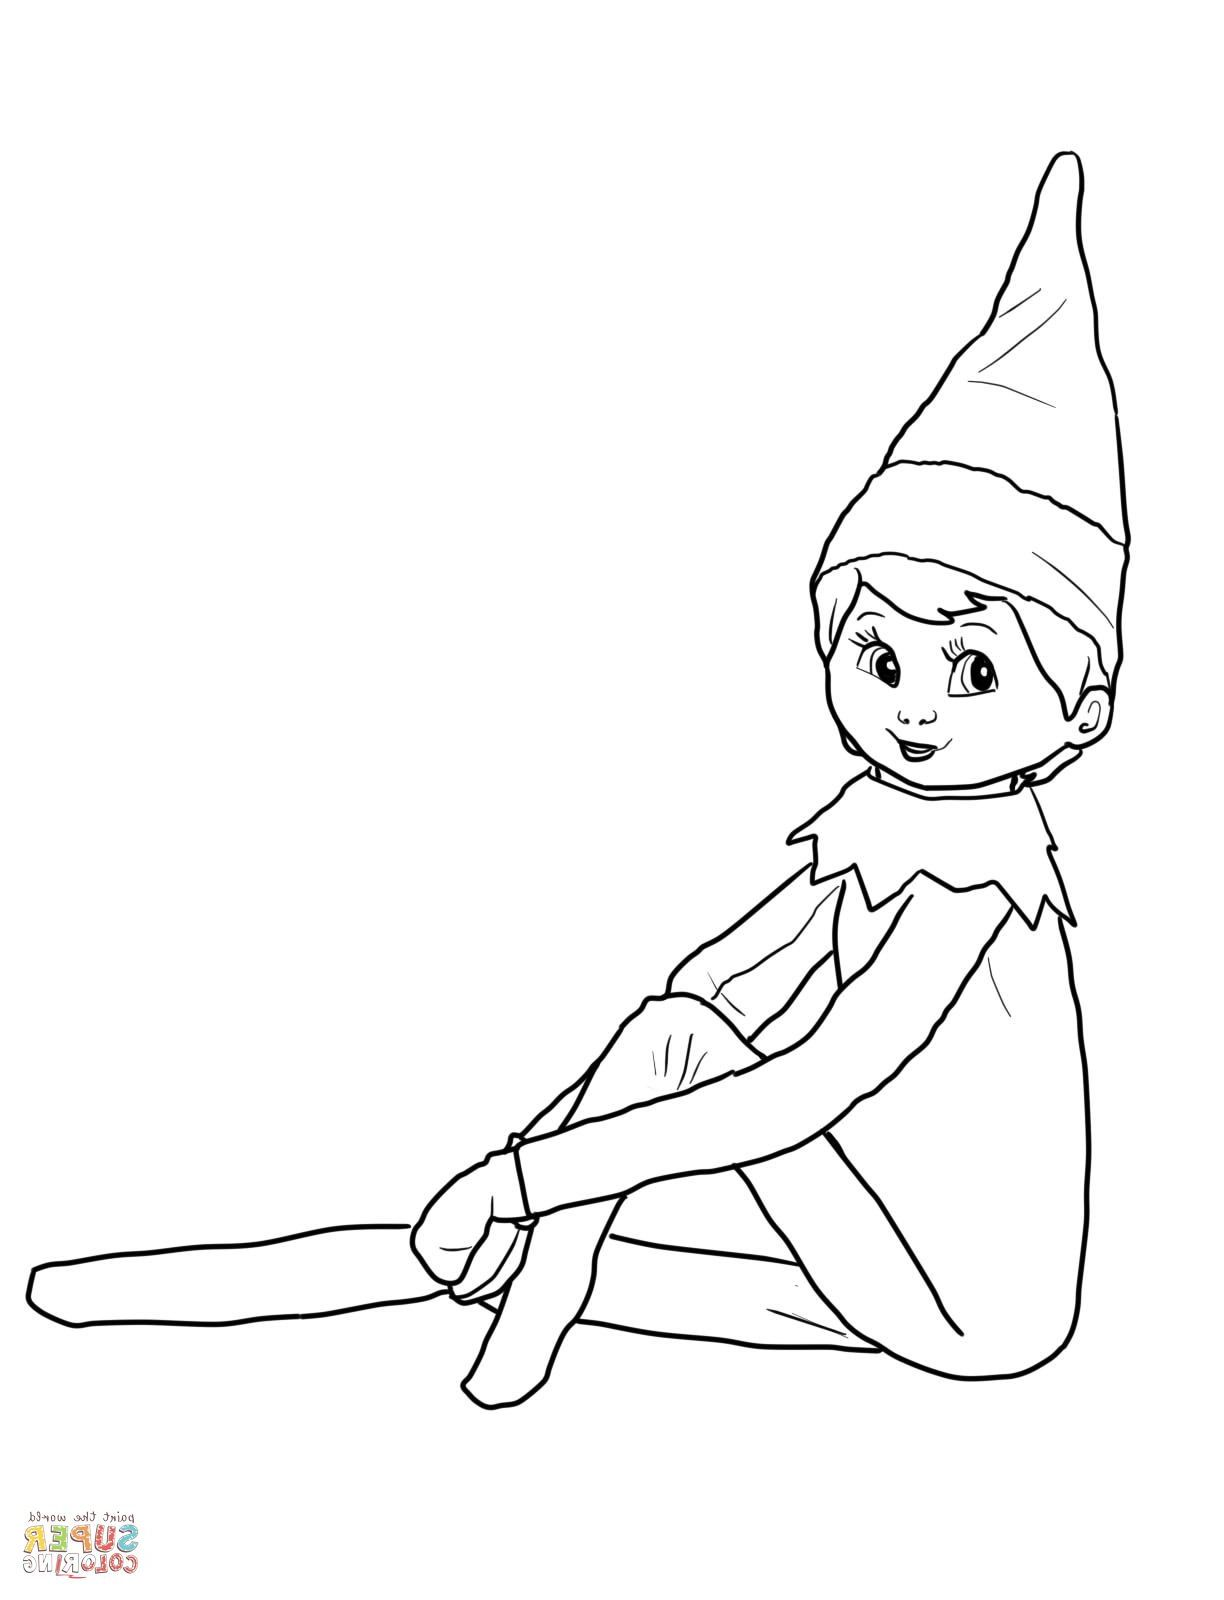 Christmas Elf Coloring Page Christmas Coloring Pages Cute